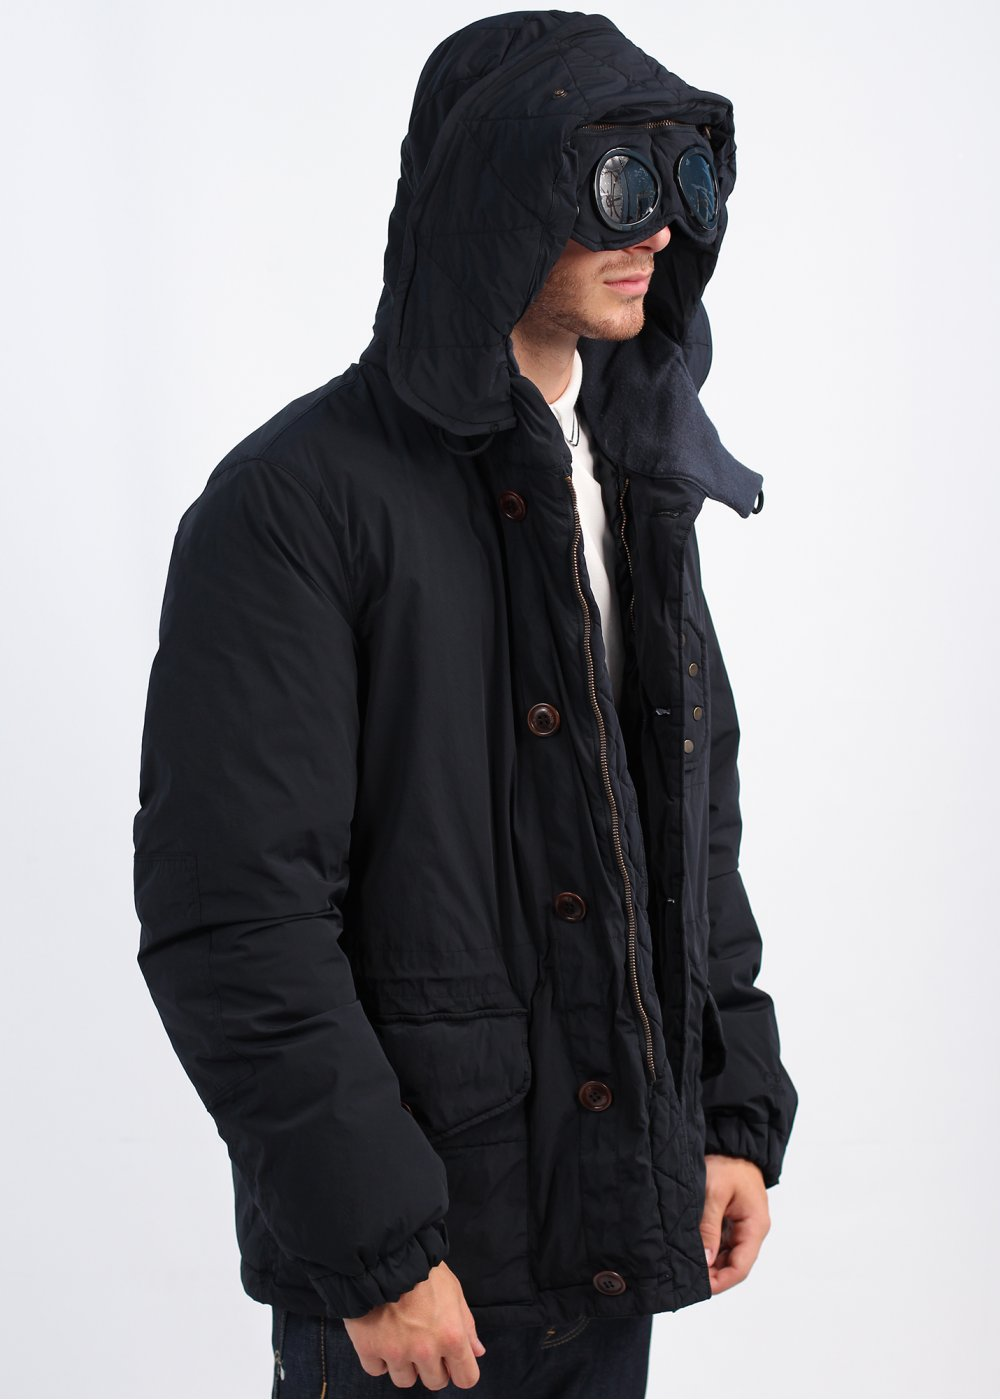 a6ffaf97e C.P. Company Nycra Garment Dyed Goggle Coat - Navy Blue